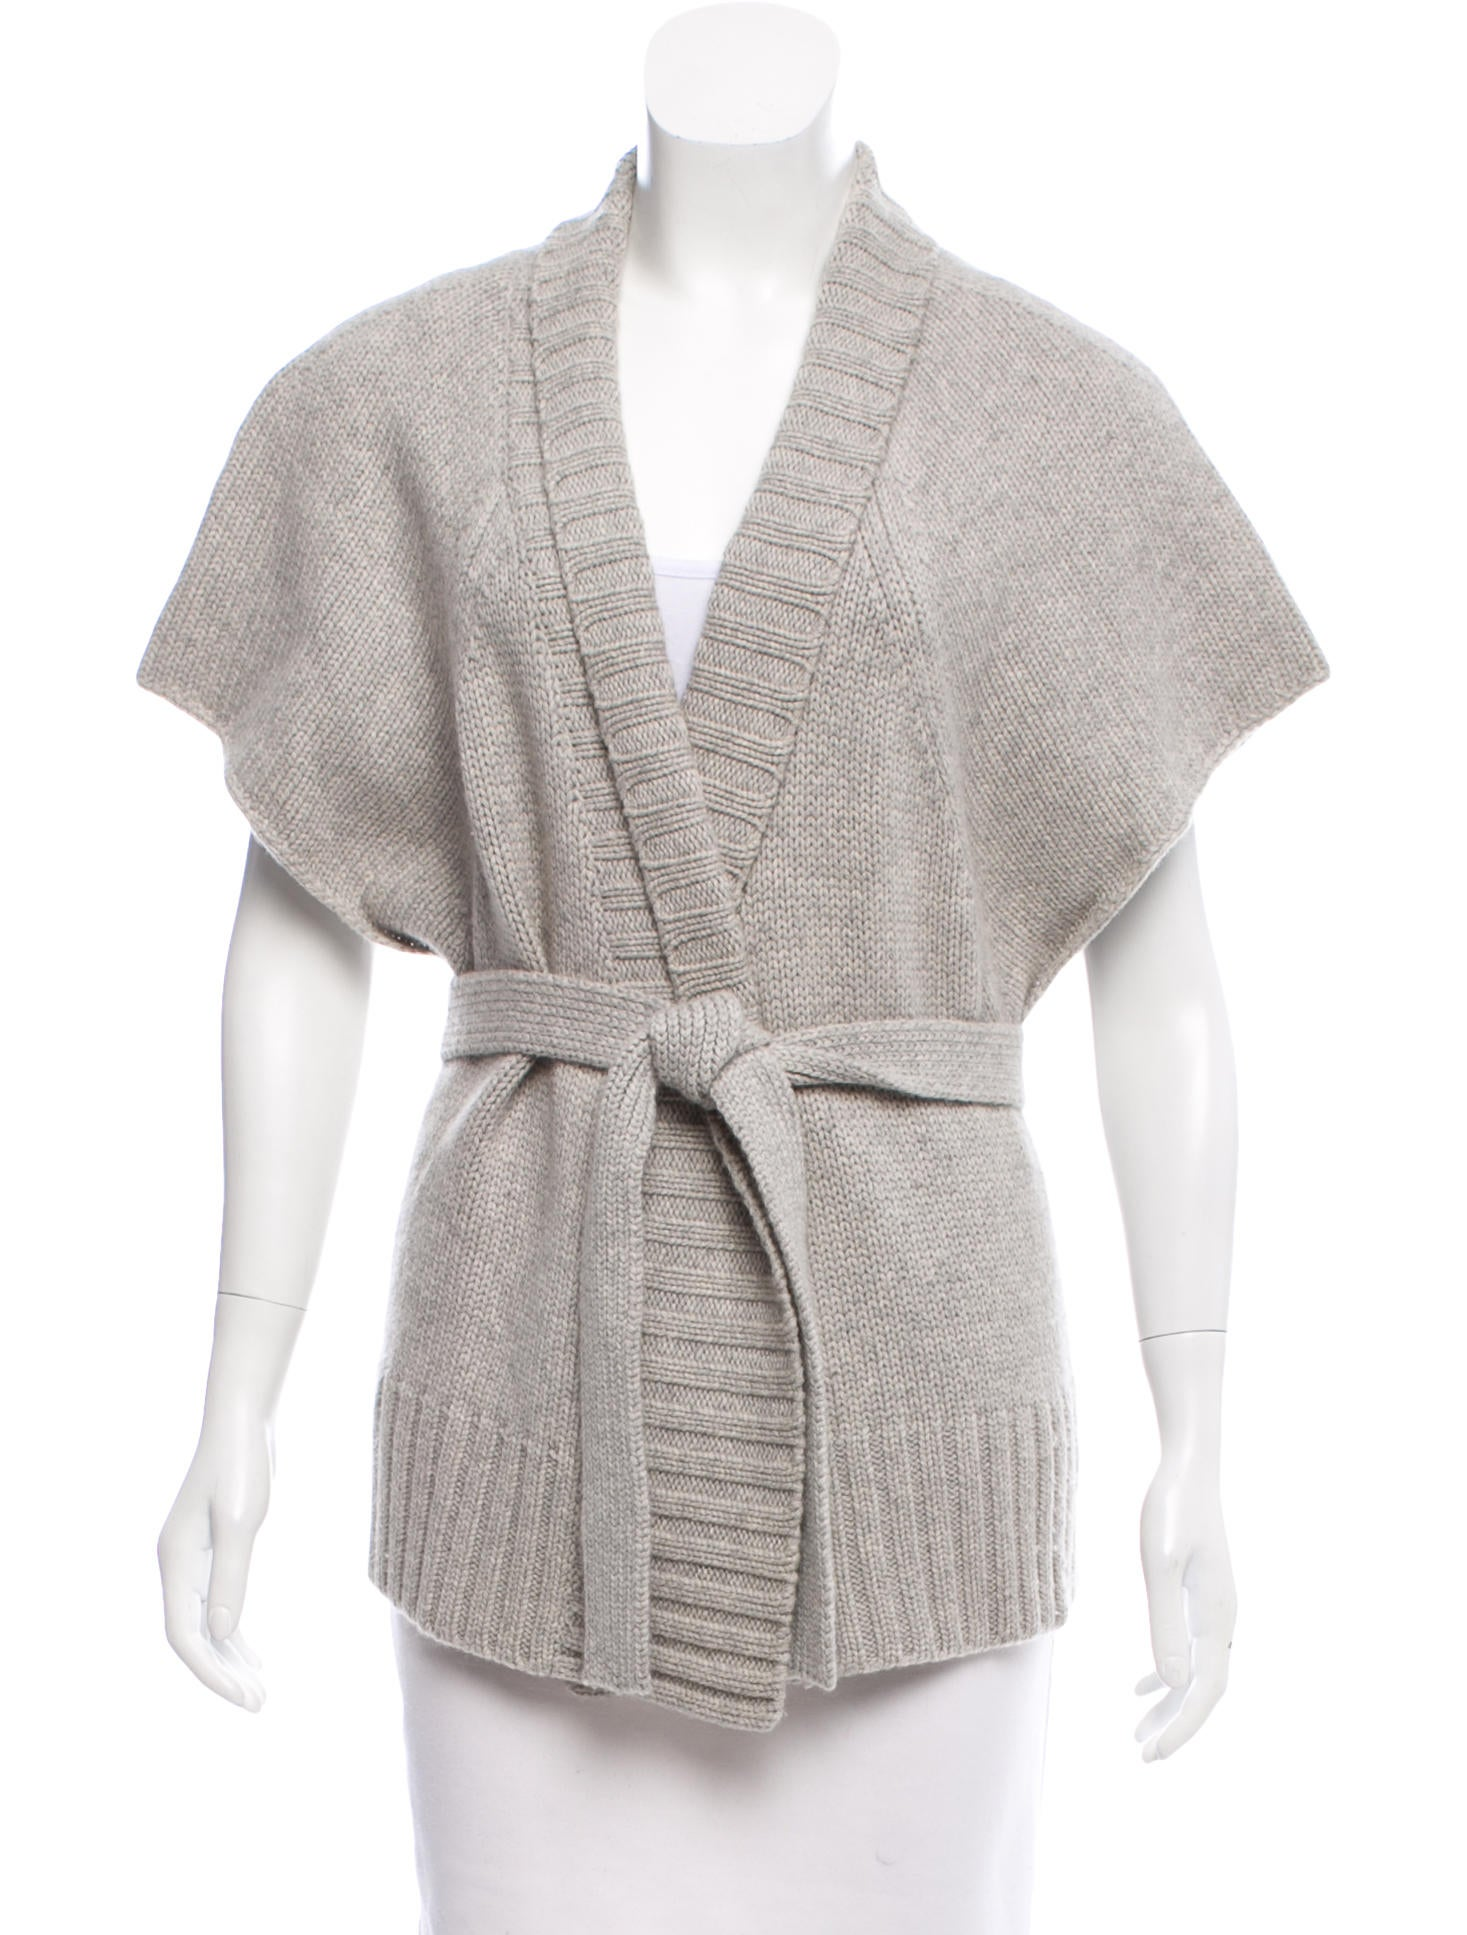 ... Michael Kors Belted Cashmere Cardigan. Belted Cashmere Cardigan ce847d37a